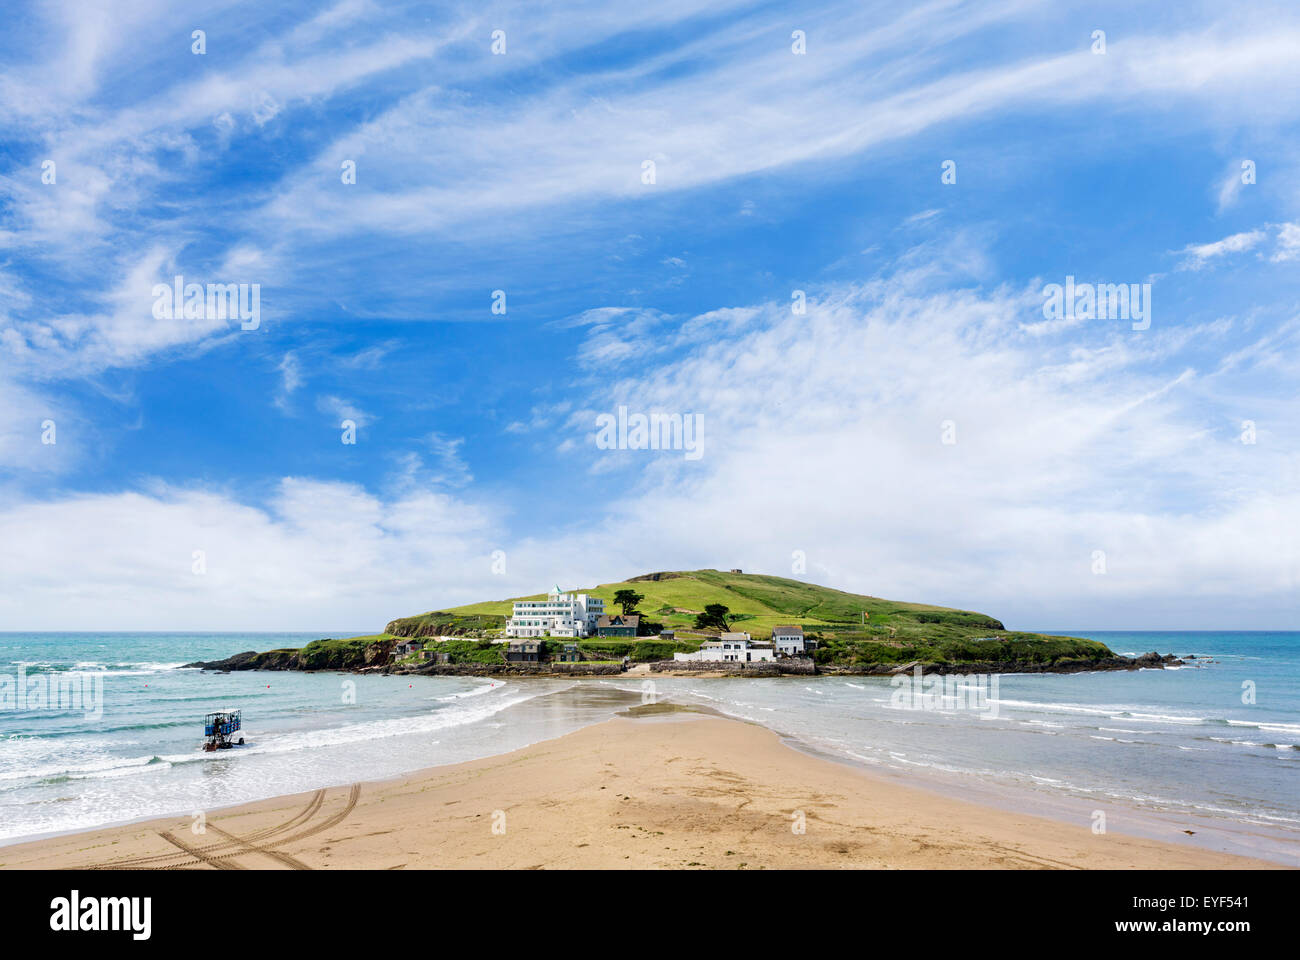 The Burgh Island Hotel and Pilchard Inn with the sea tractor in the foreground, Burgh Island, Bigbury-on-Sea, Devon, - Stock Image